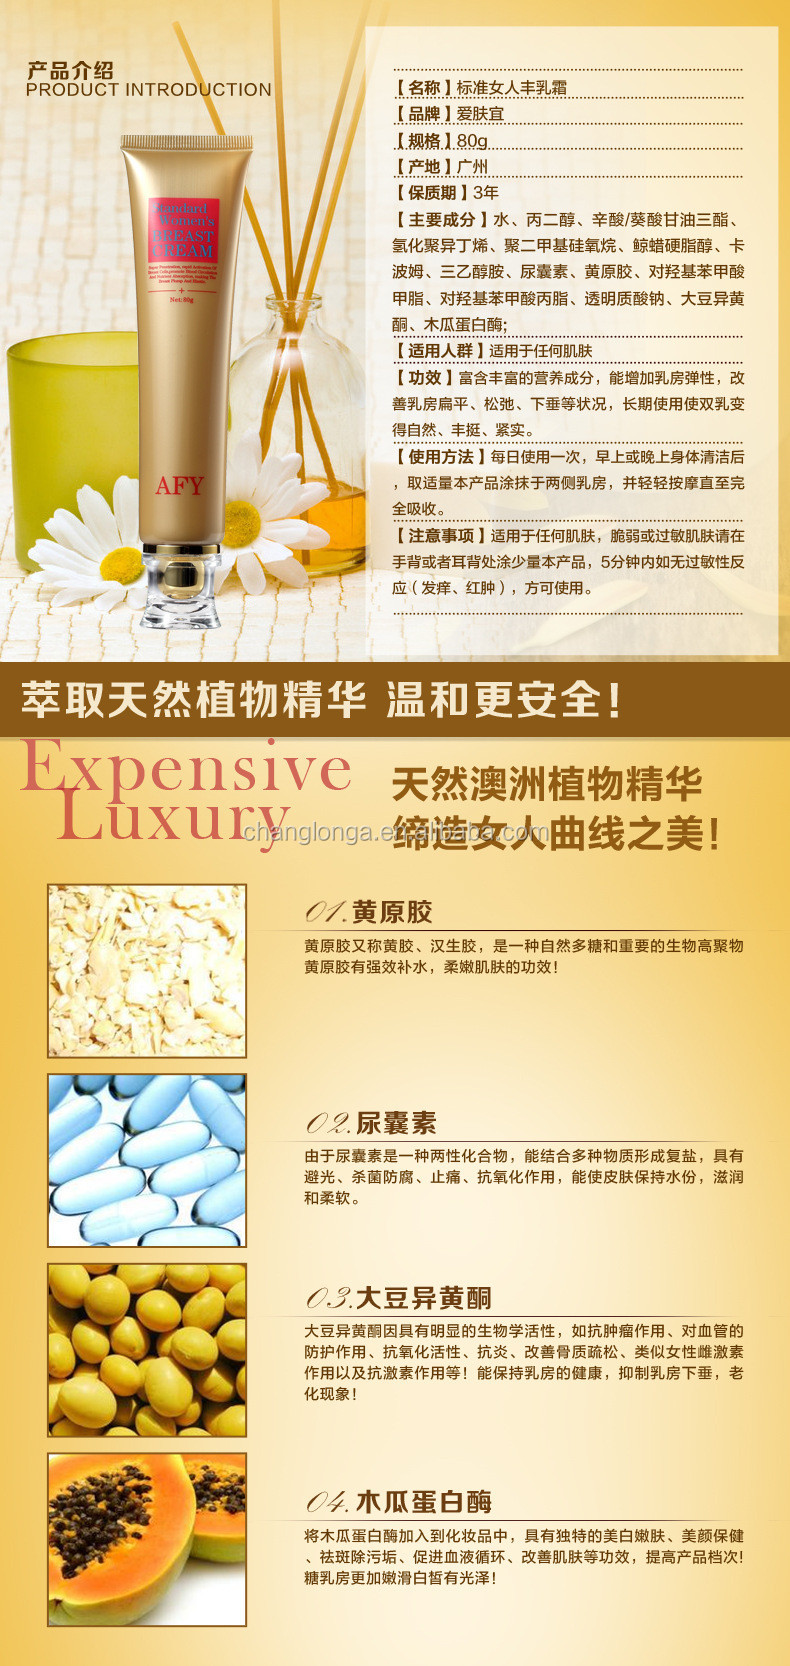 AFY Chinese Natural Breast Enlargement Cream Effective Breat enlarge from A to D up